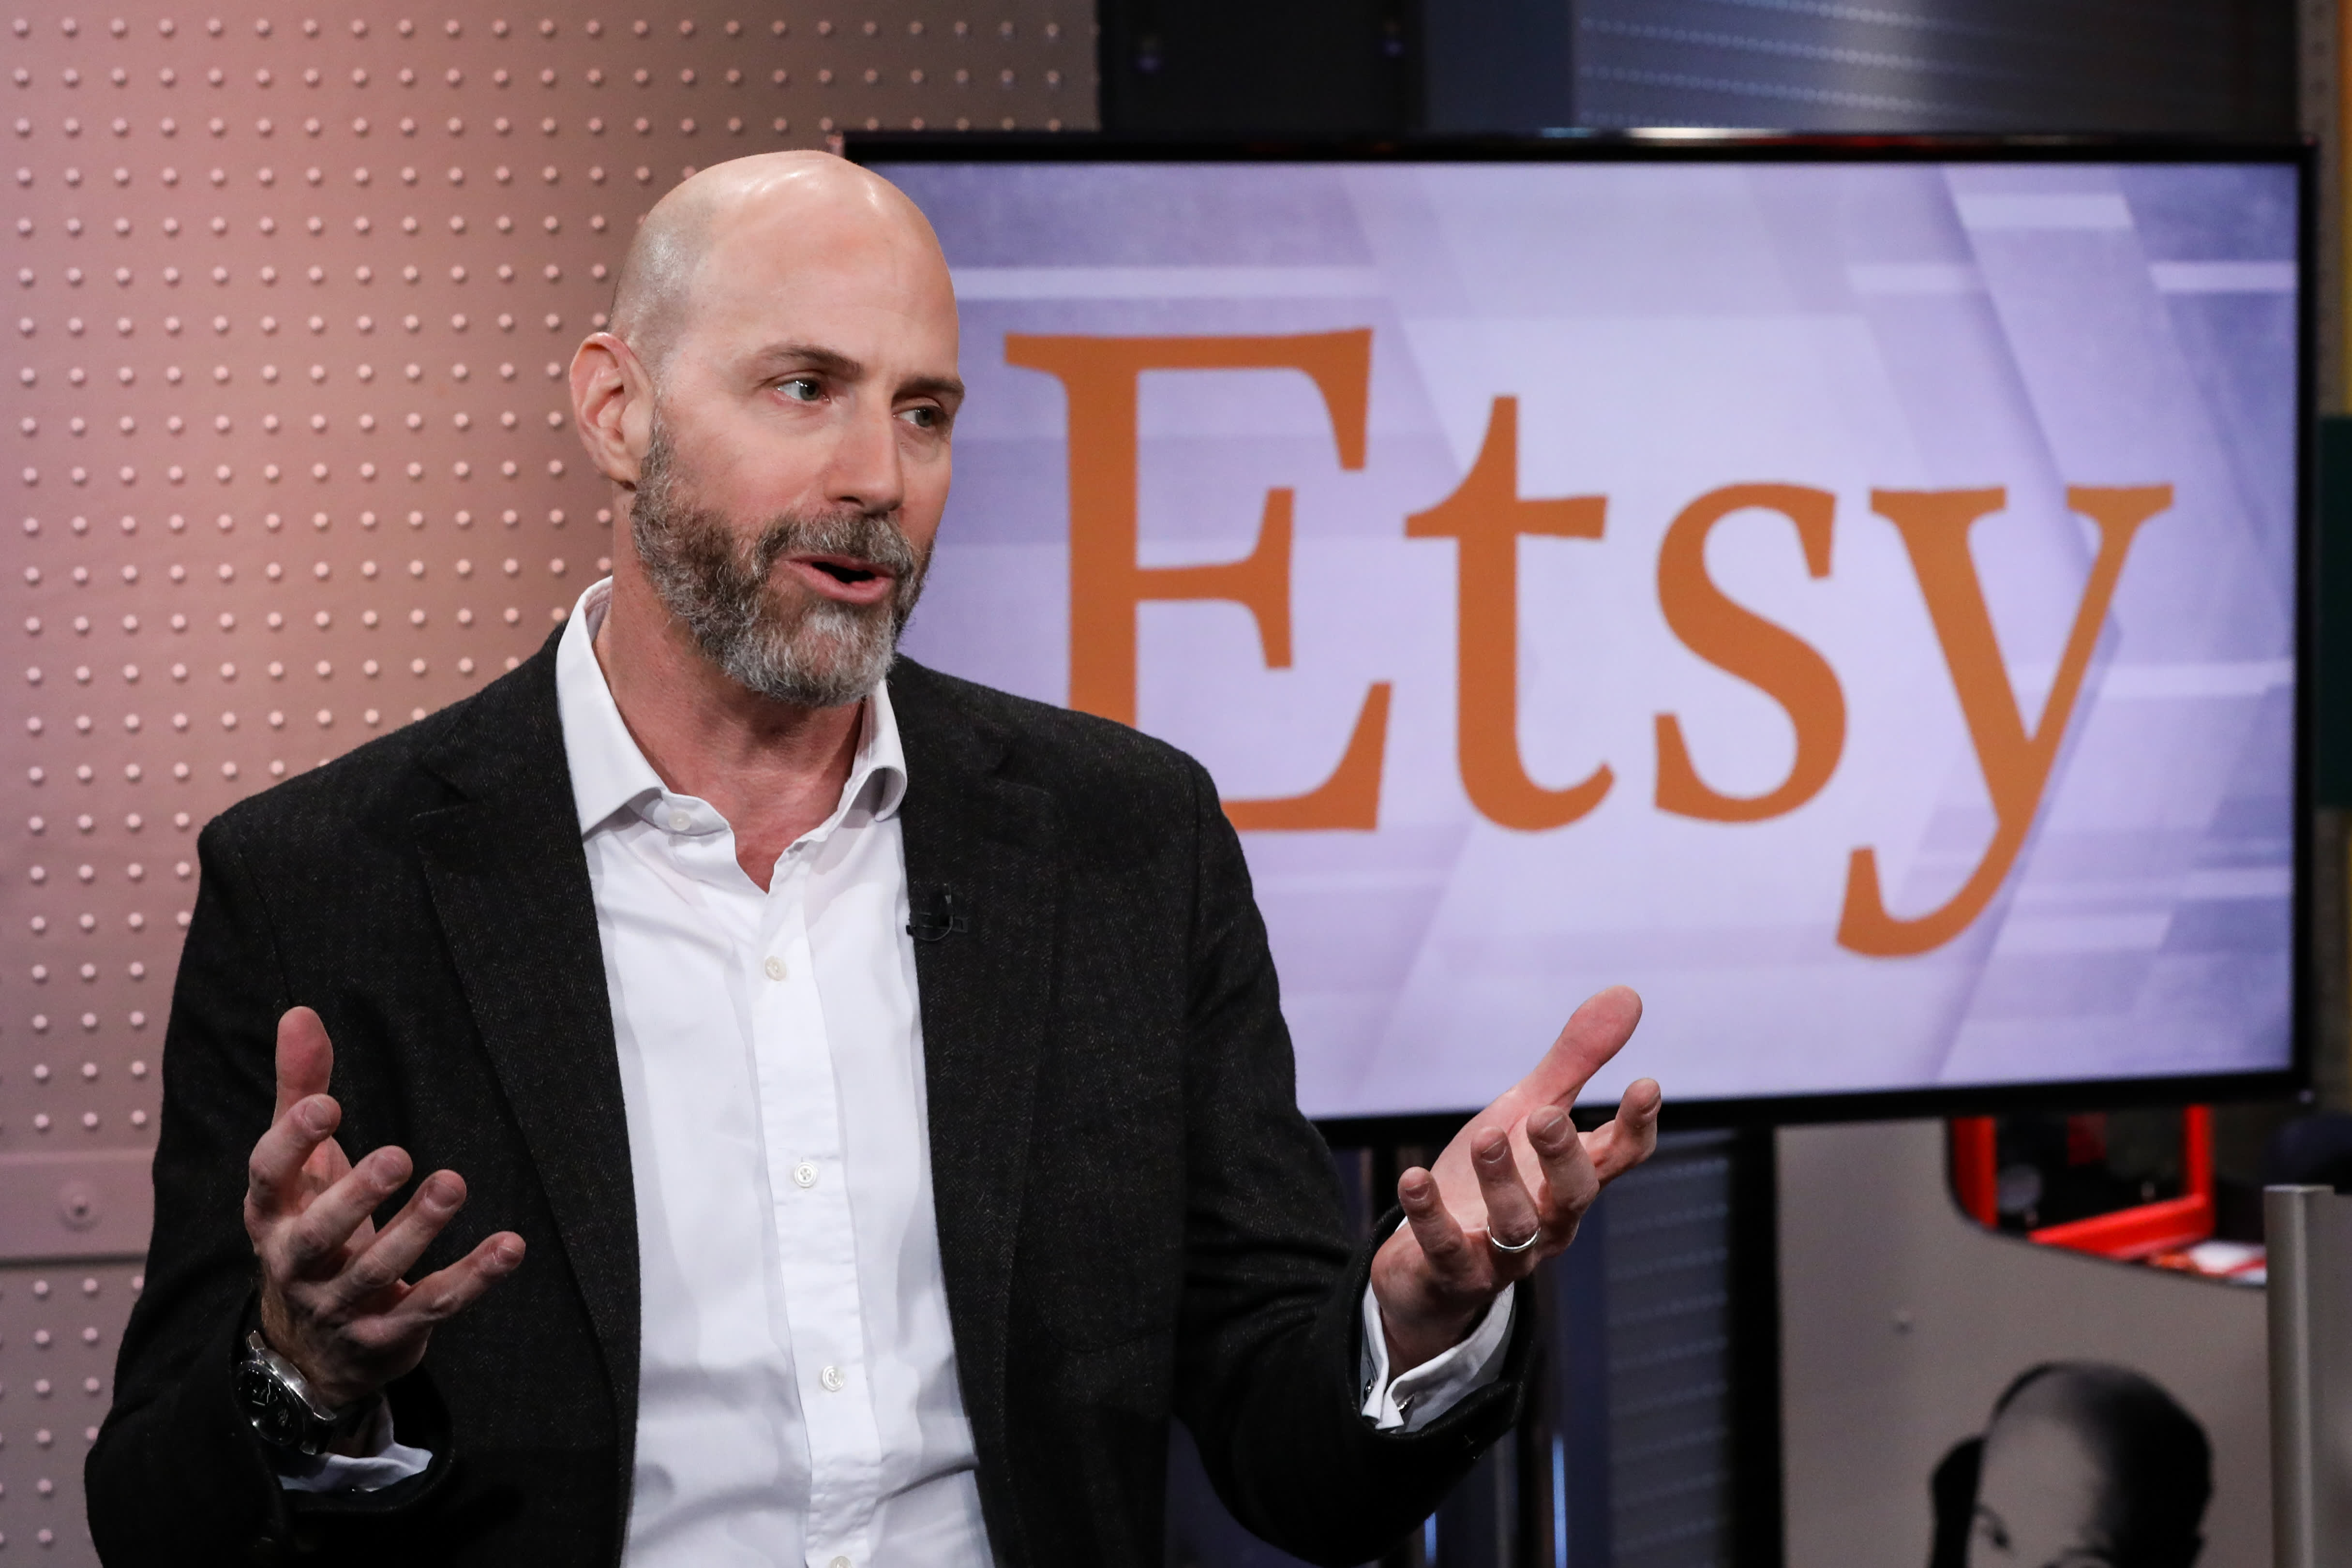 Etsy is working with social media influencers to help attract new shoppers, CEO says